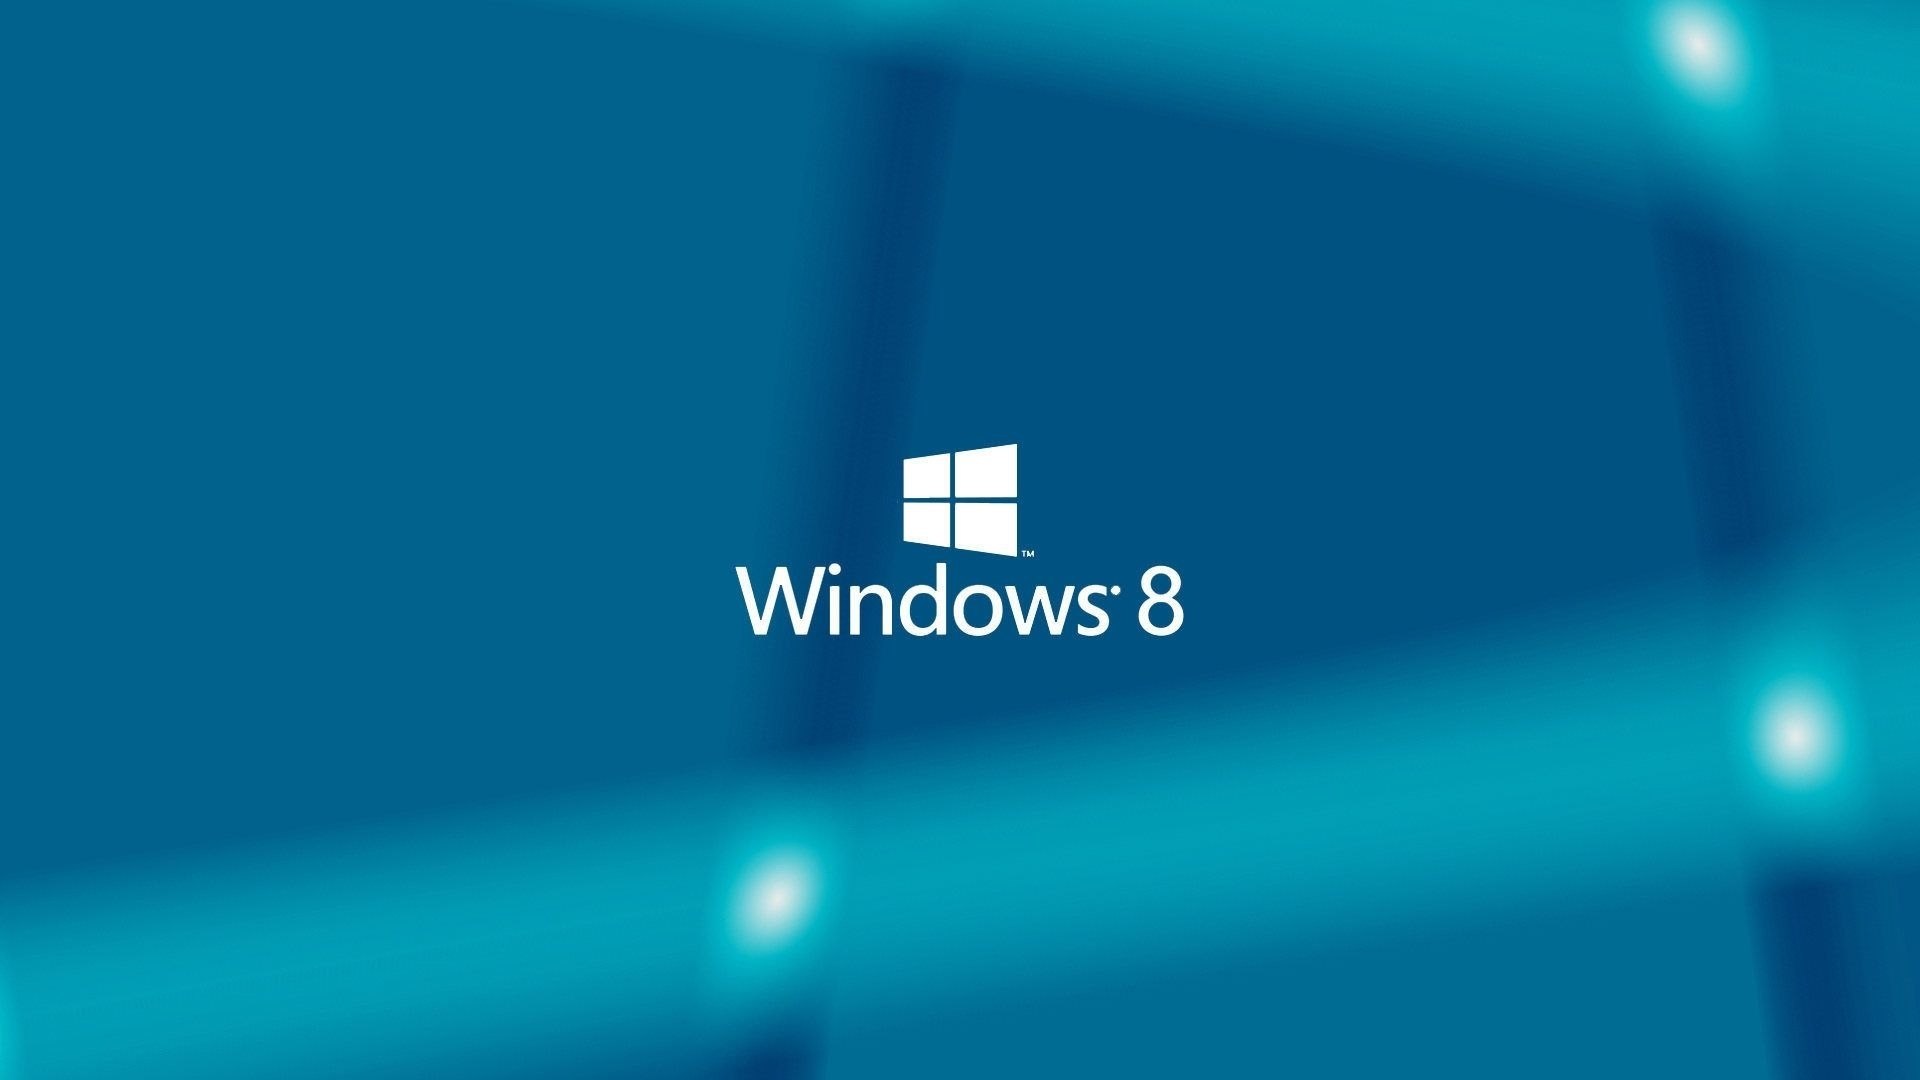 wallpapers hd 1080p free download for windows 8 group (82+)